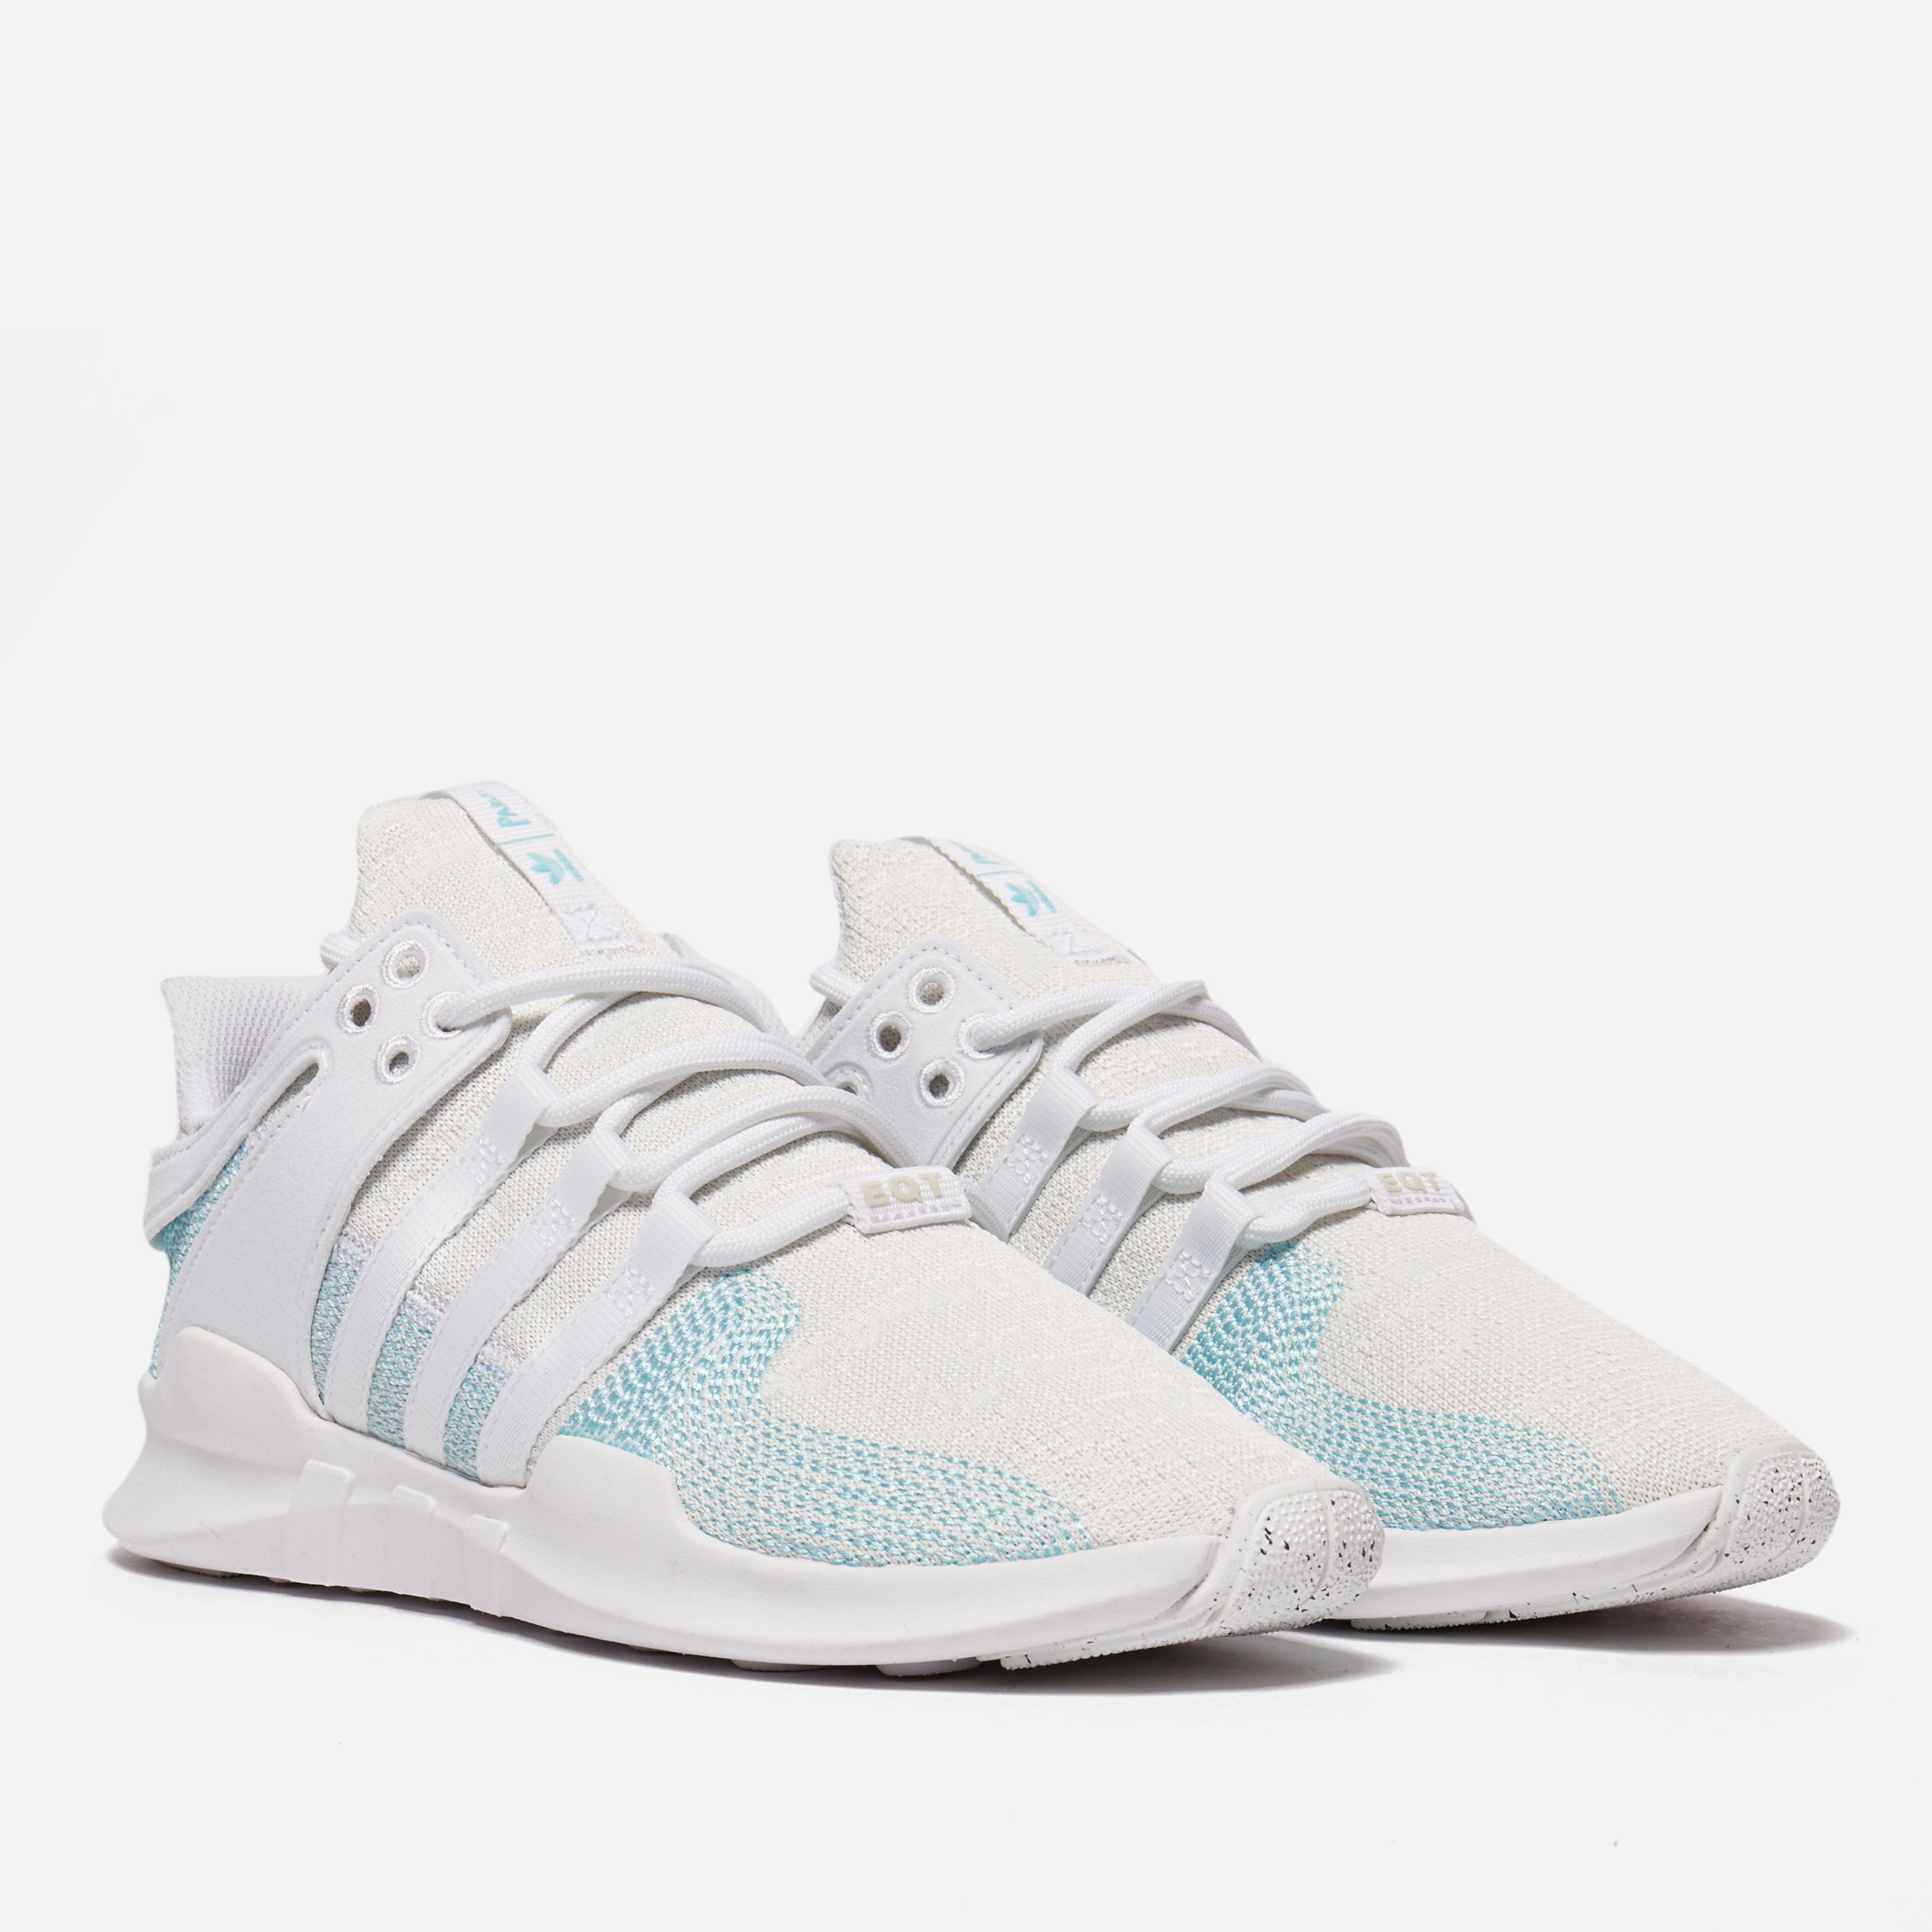 adidas Originals X Parley EQT Support ADV CK Parley Legend